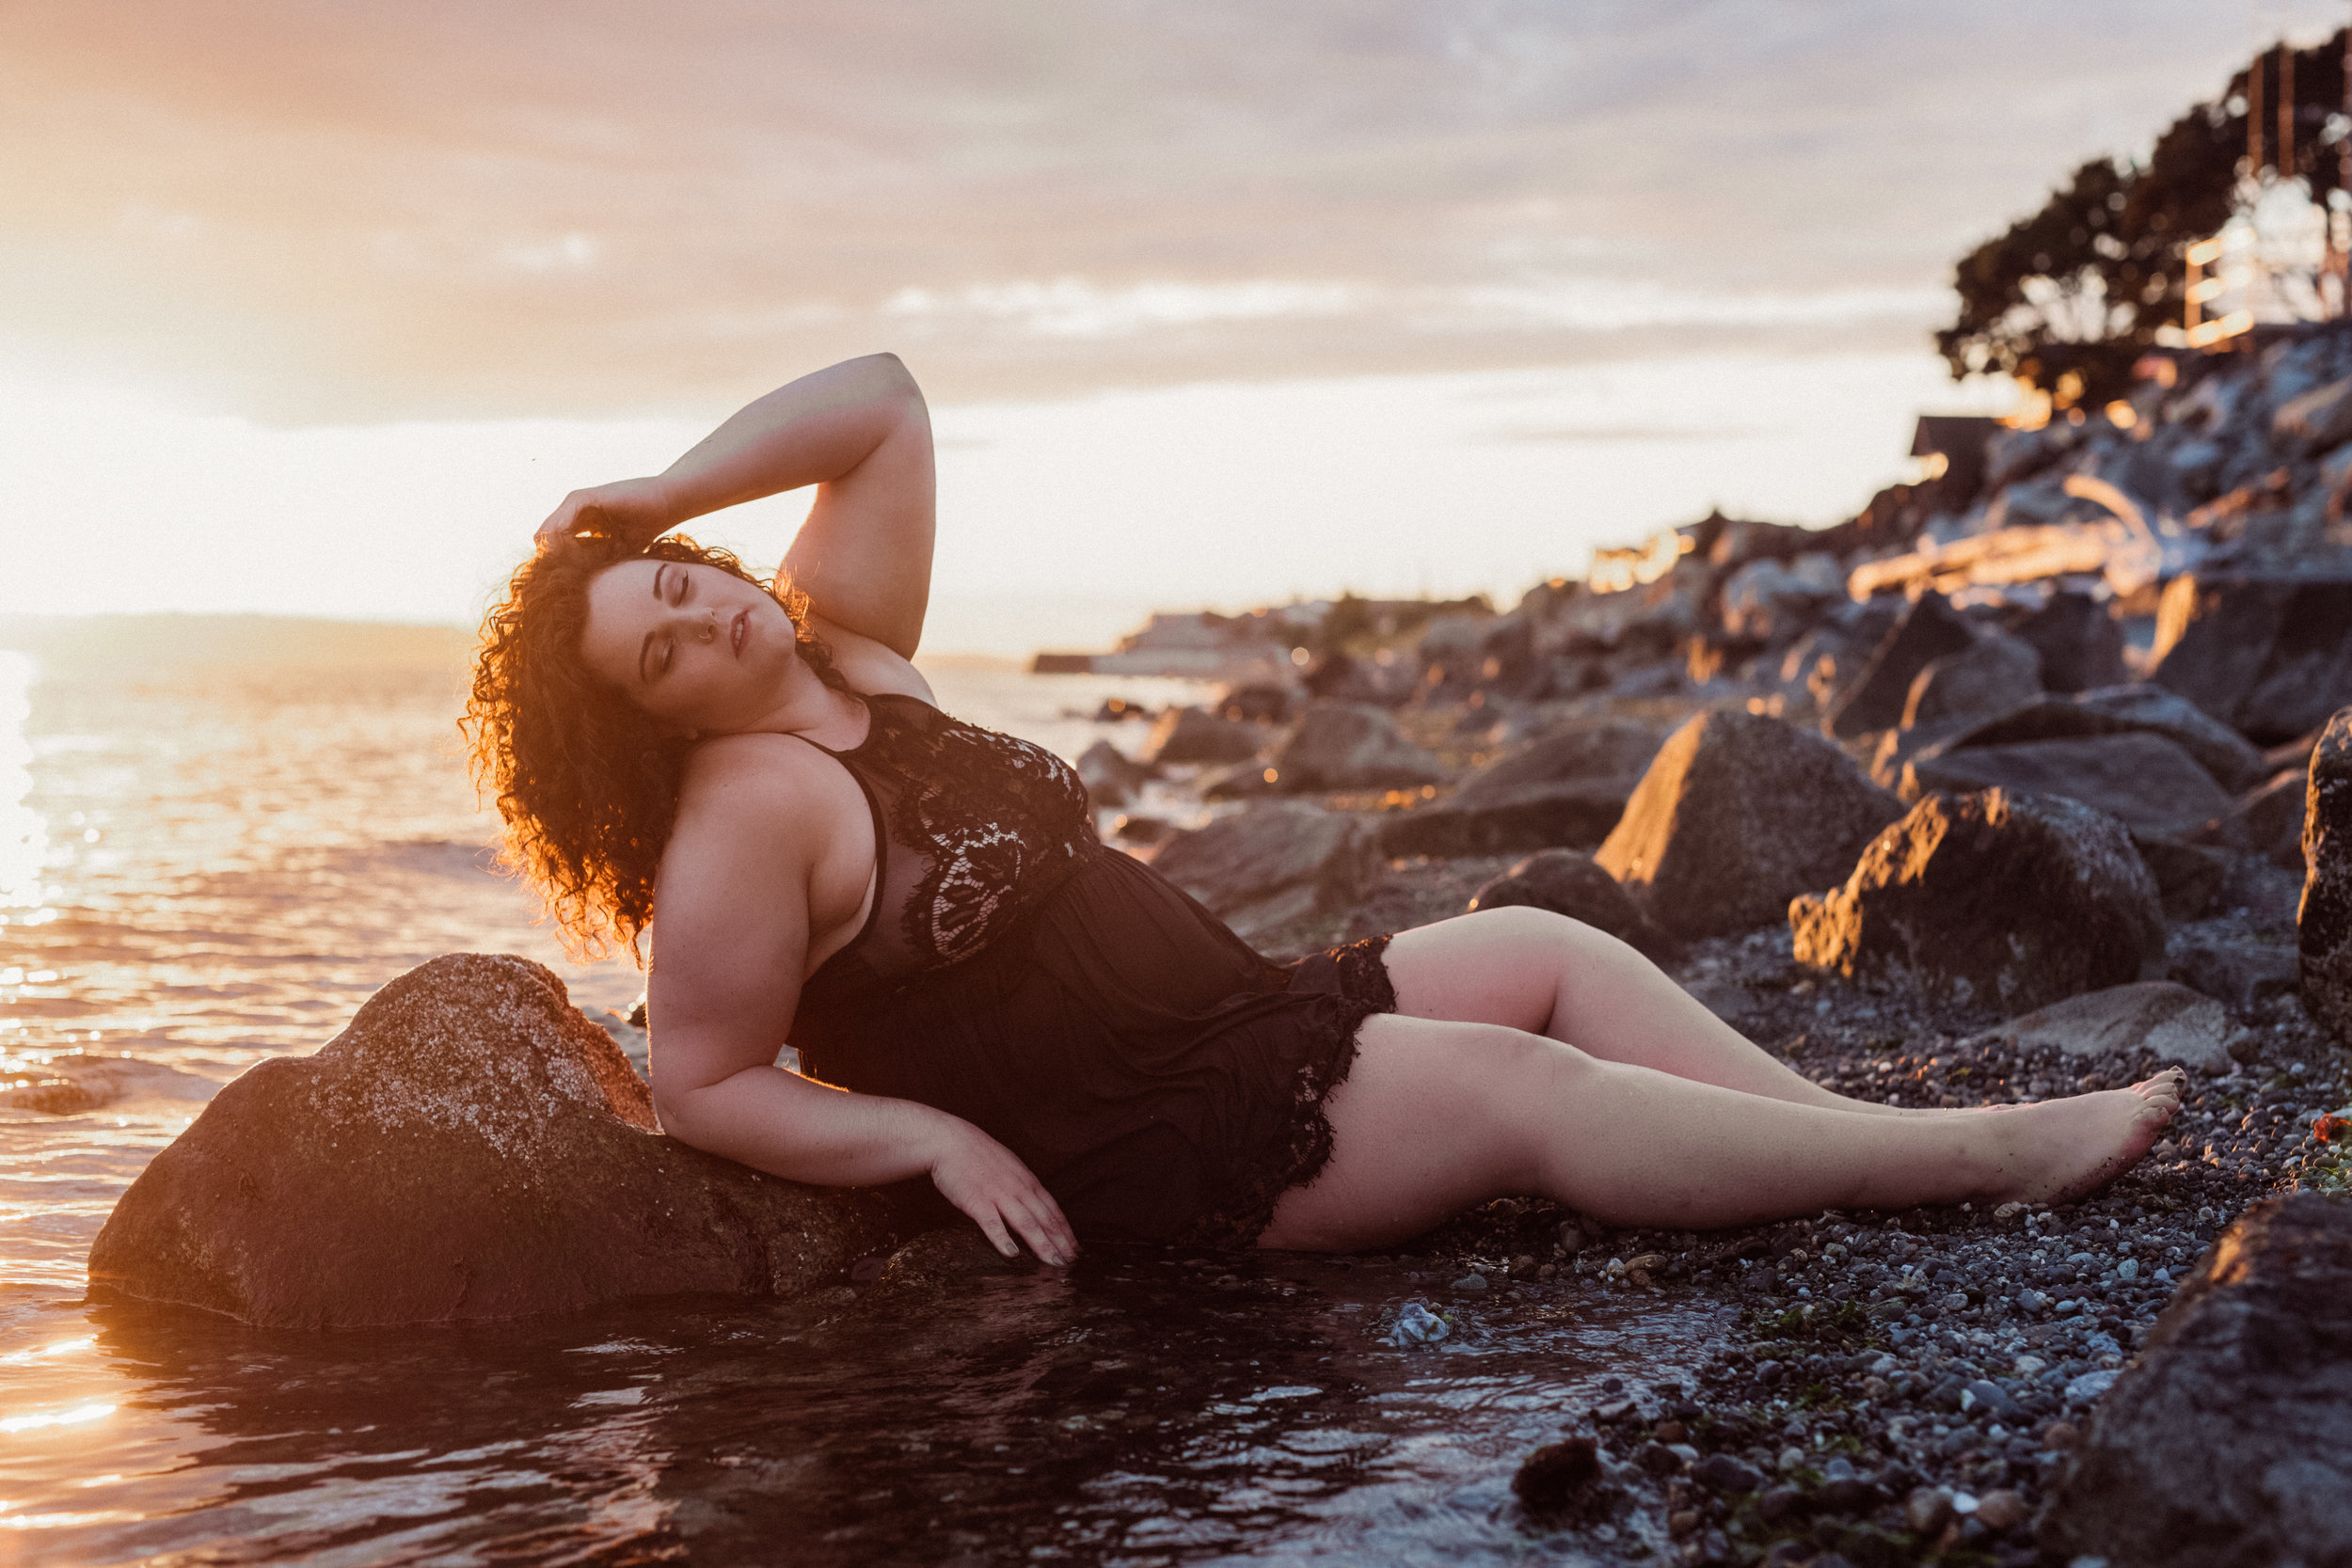 """- """"It was so dope to go out in the ocean in lingerie, especially as a fat woman / larger body. Amy made me feel so comfortable, sexy & powerful! I honestly would recommend it for anyone. She had a brilliant way of both directing me on what to do & also affirming that I looked hot af.Plus after seeing the pictures I was totally relishing in how sexy I look! It was so much fun.""""Hair and makeup styling by Kat St. John"""